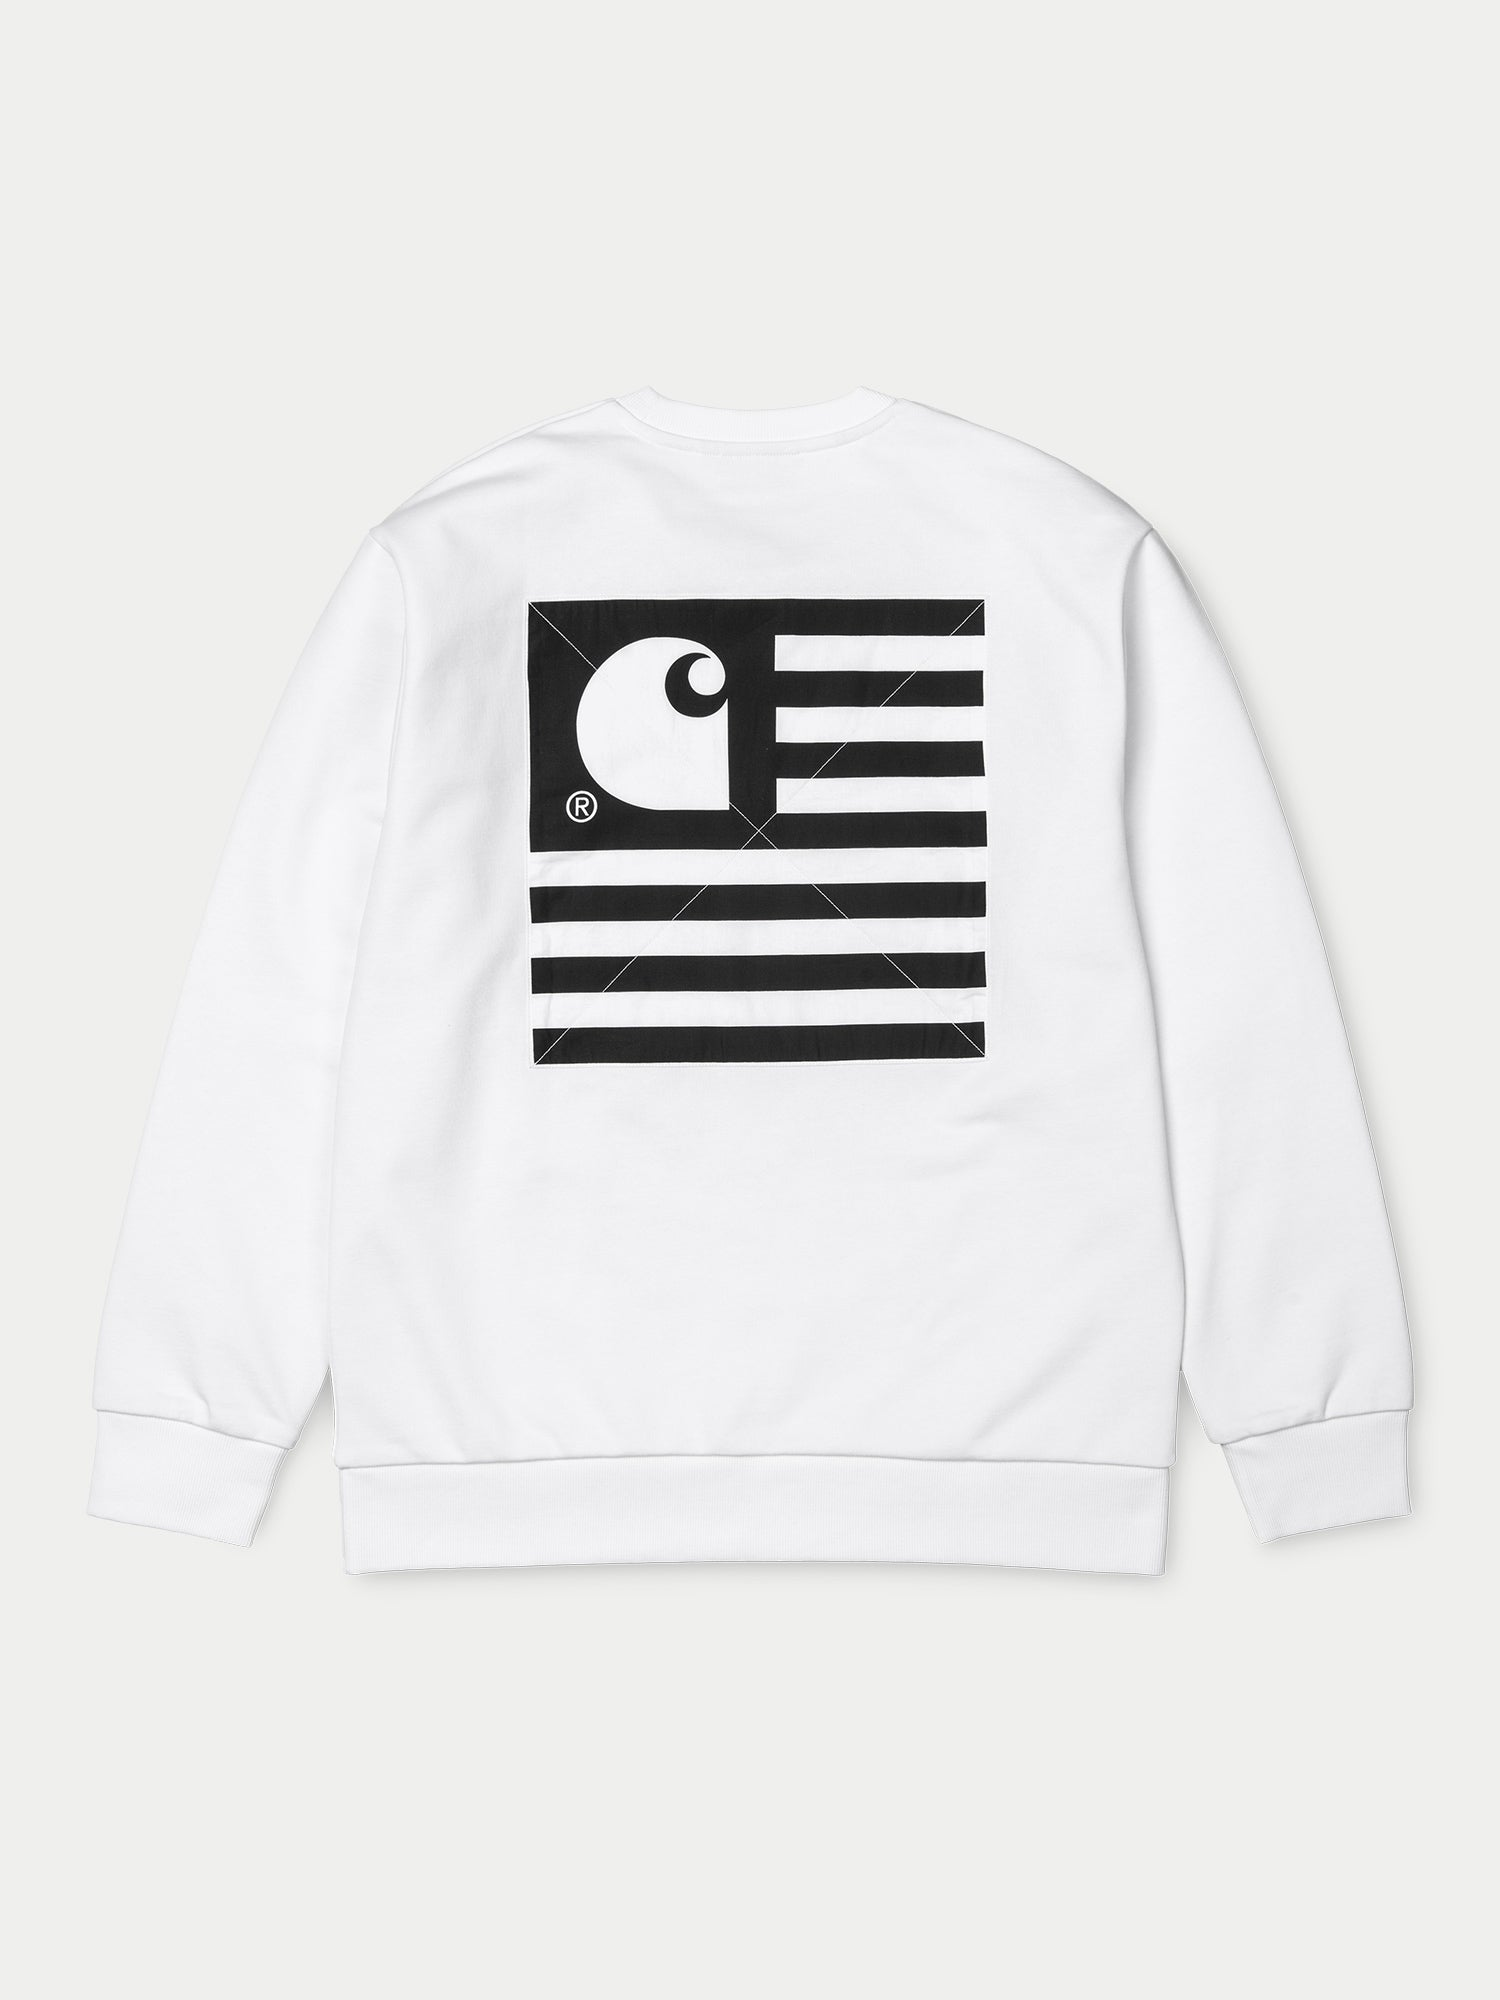 995c8a05 Carhartt State Patch Sweatshirt (White)